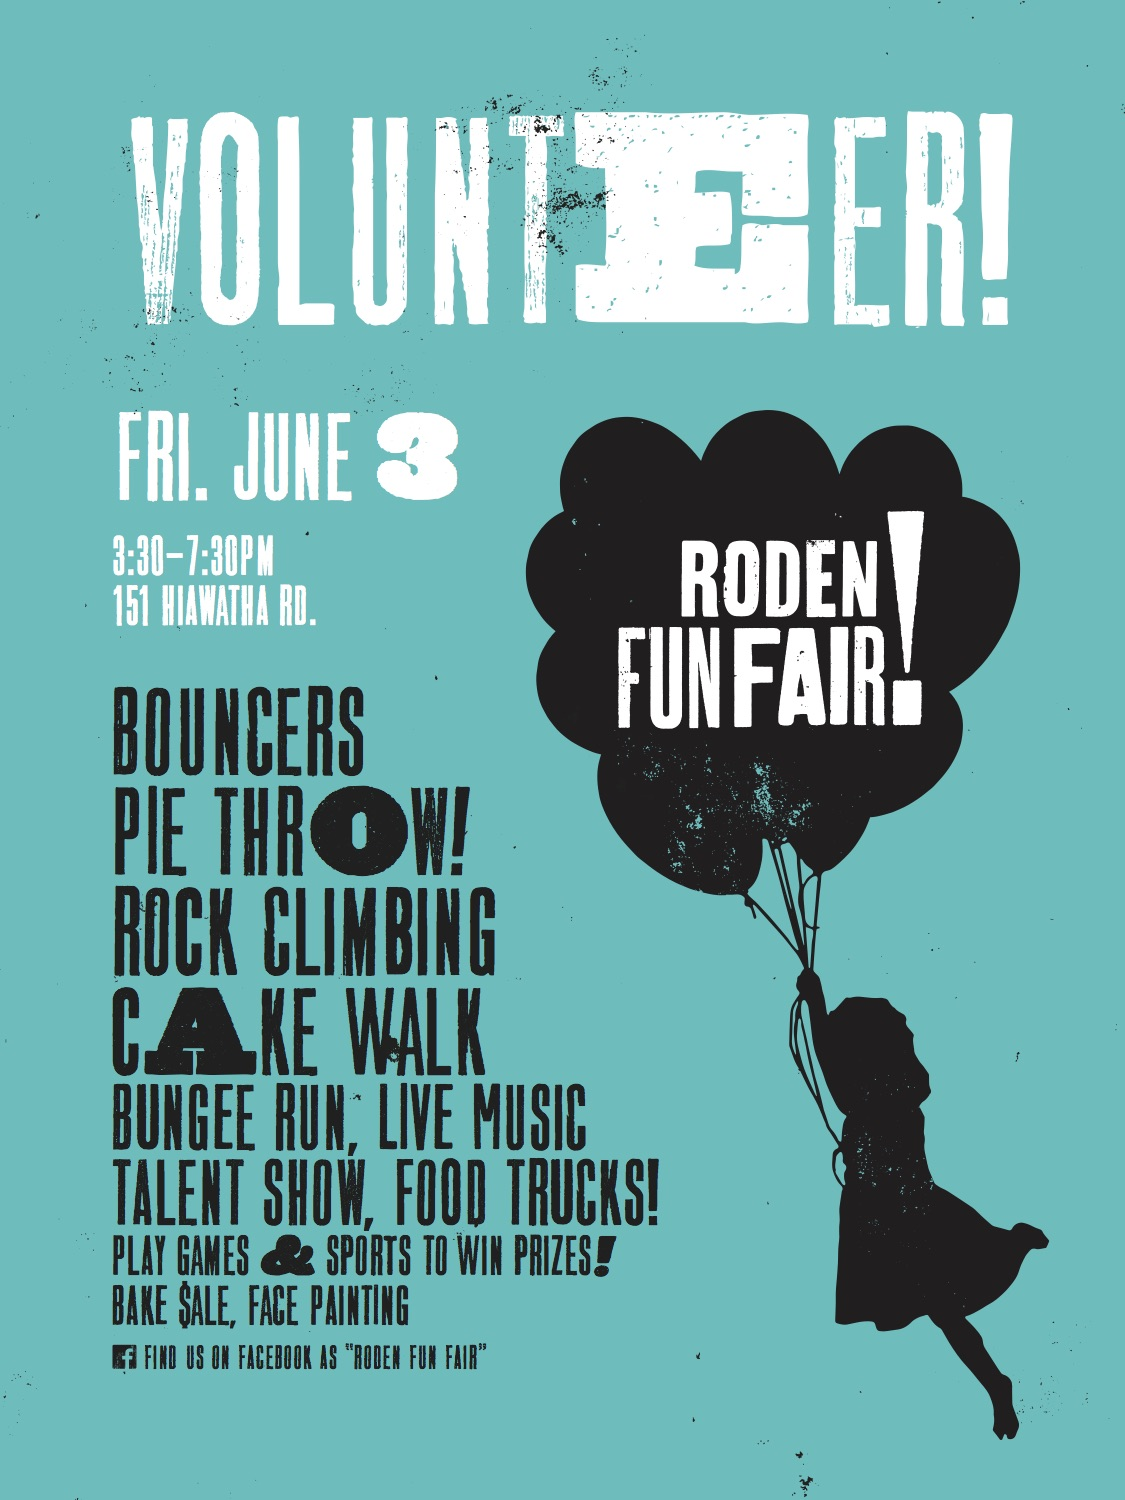 roden_funfair_volunteer